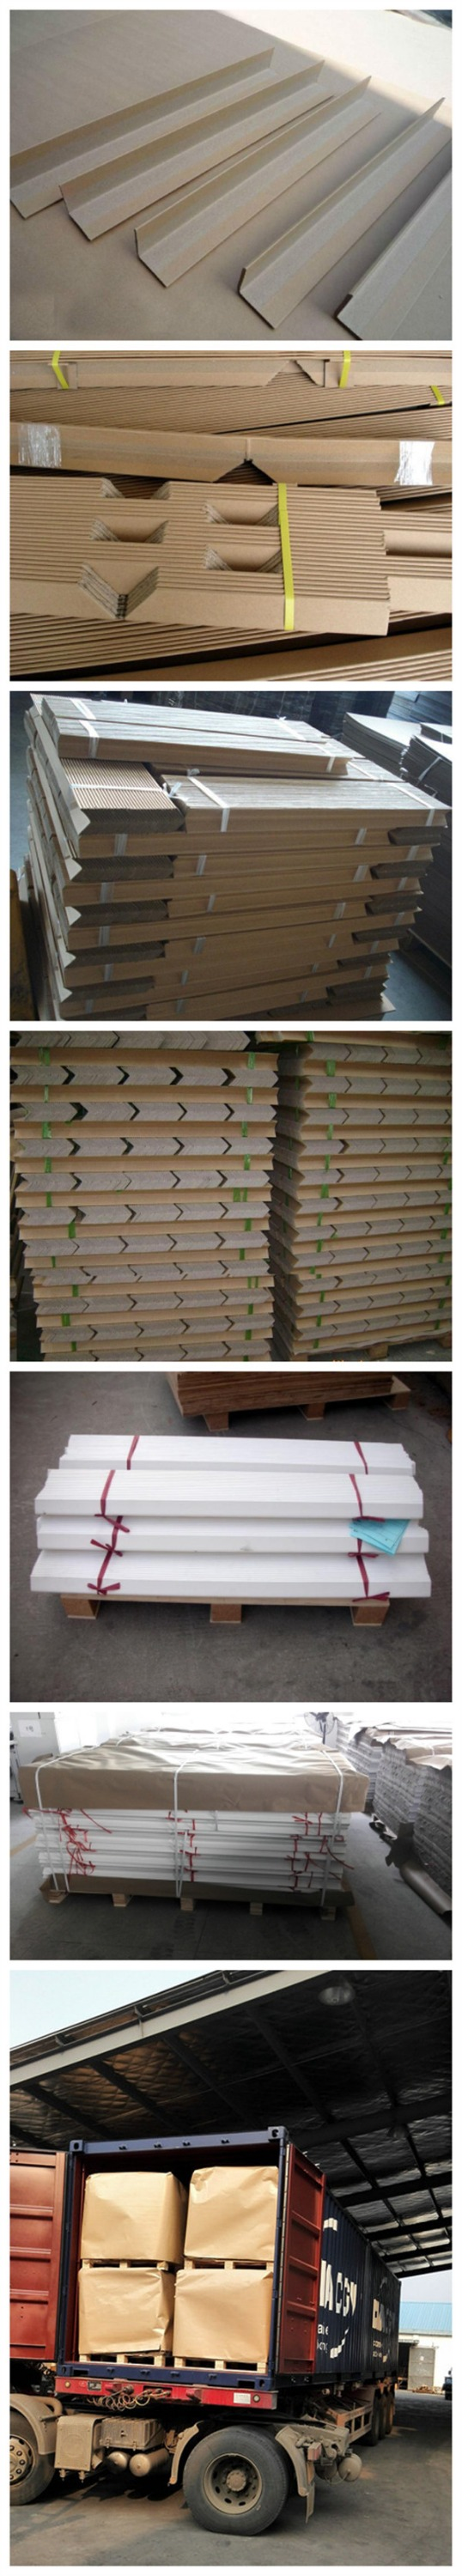 Plywood Corner Protector ~ Honeycomb material packaging corner for plywood pallets